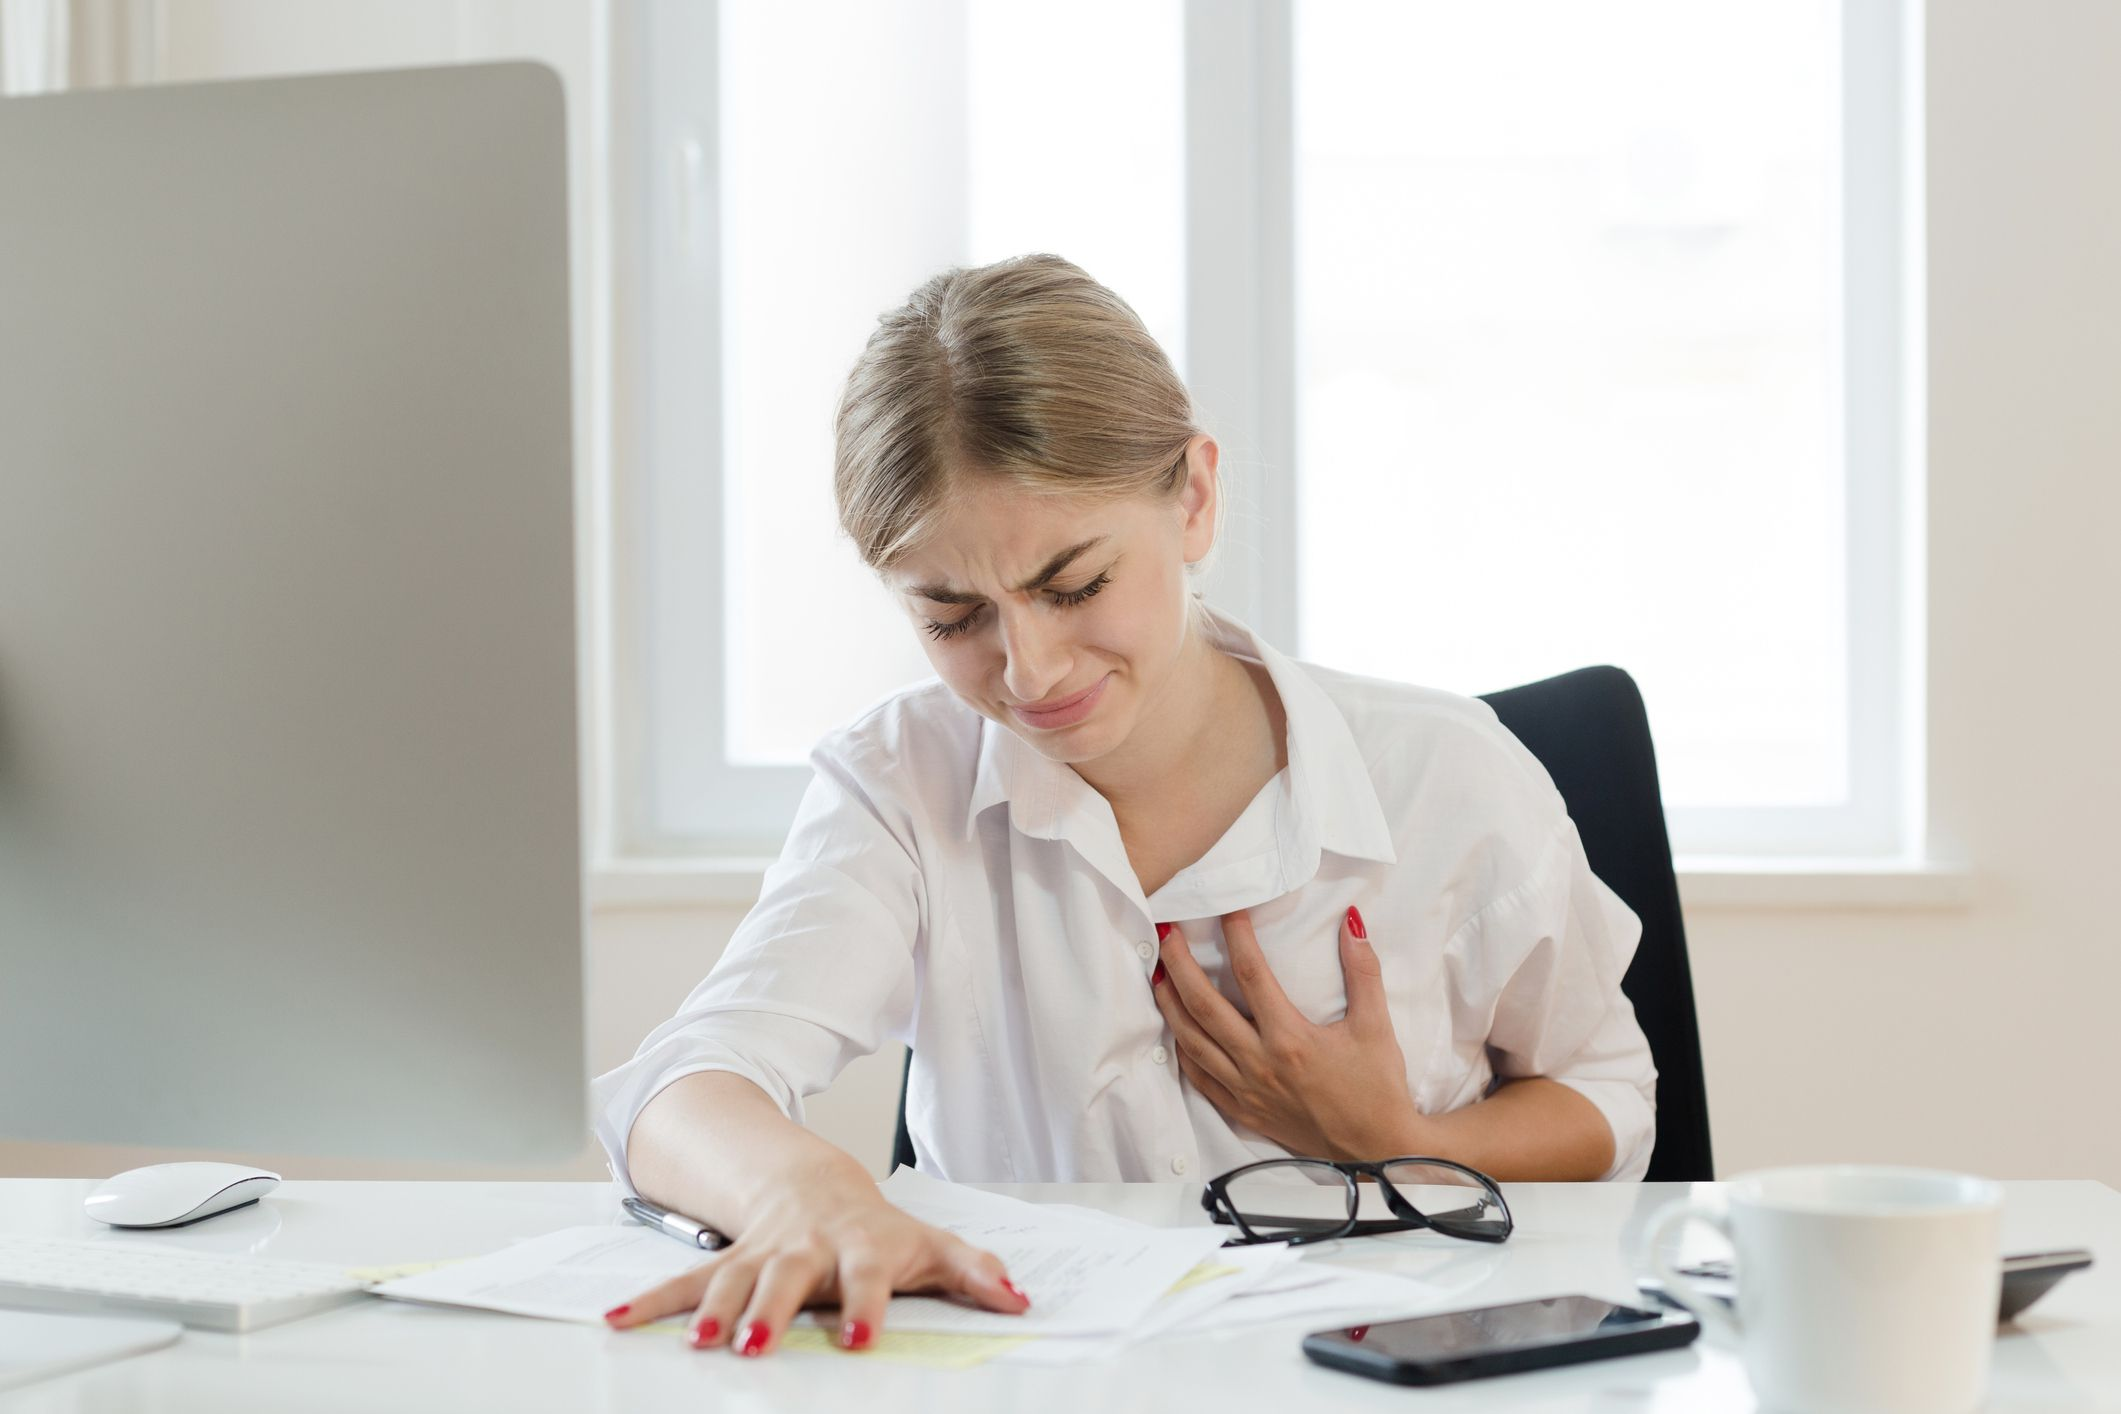 A woman touching her chest in pain